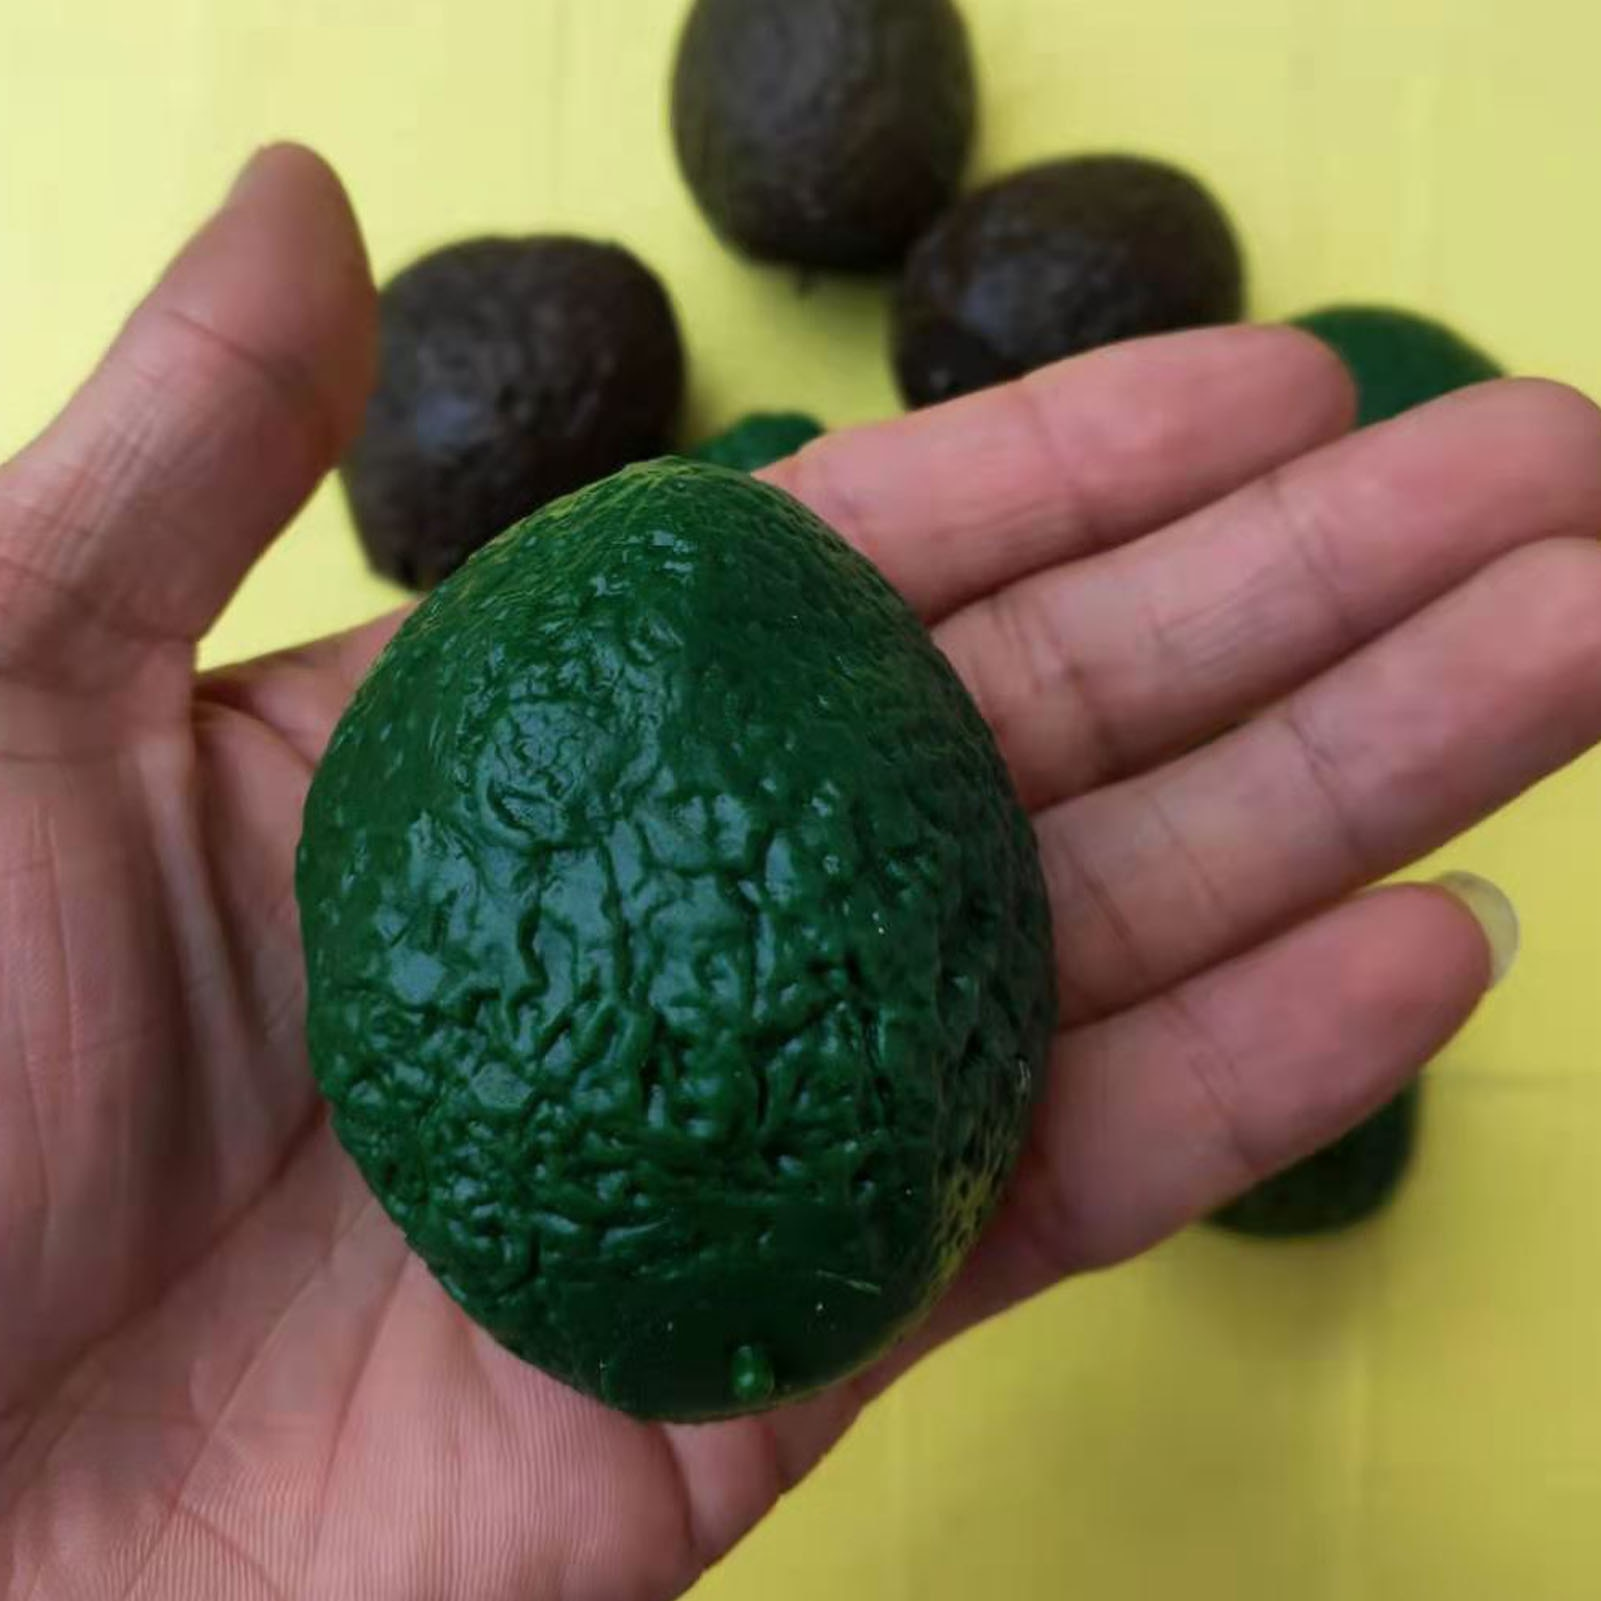 12PCS Avocado Toy Decompression Stress Relief Fun Toy For Kids Adult Anxiety Stress Relief Fidget Decompression Sensory Toys enlarge